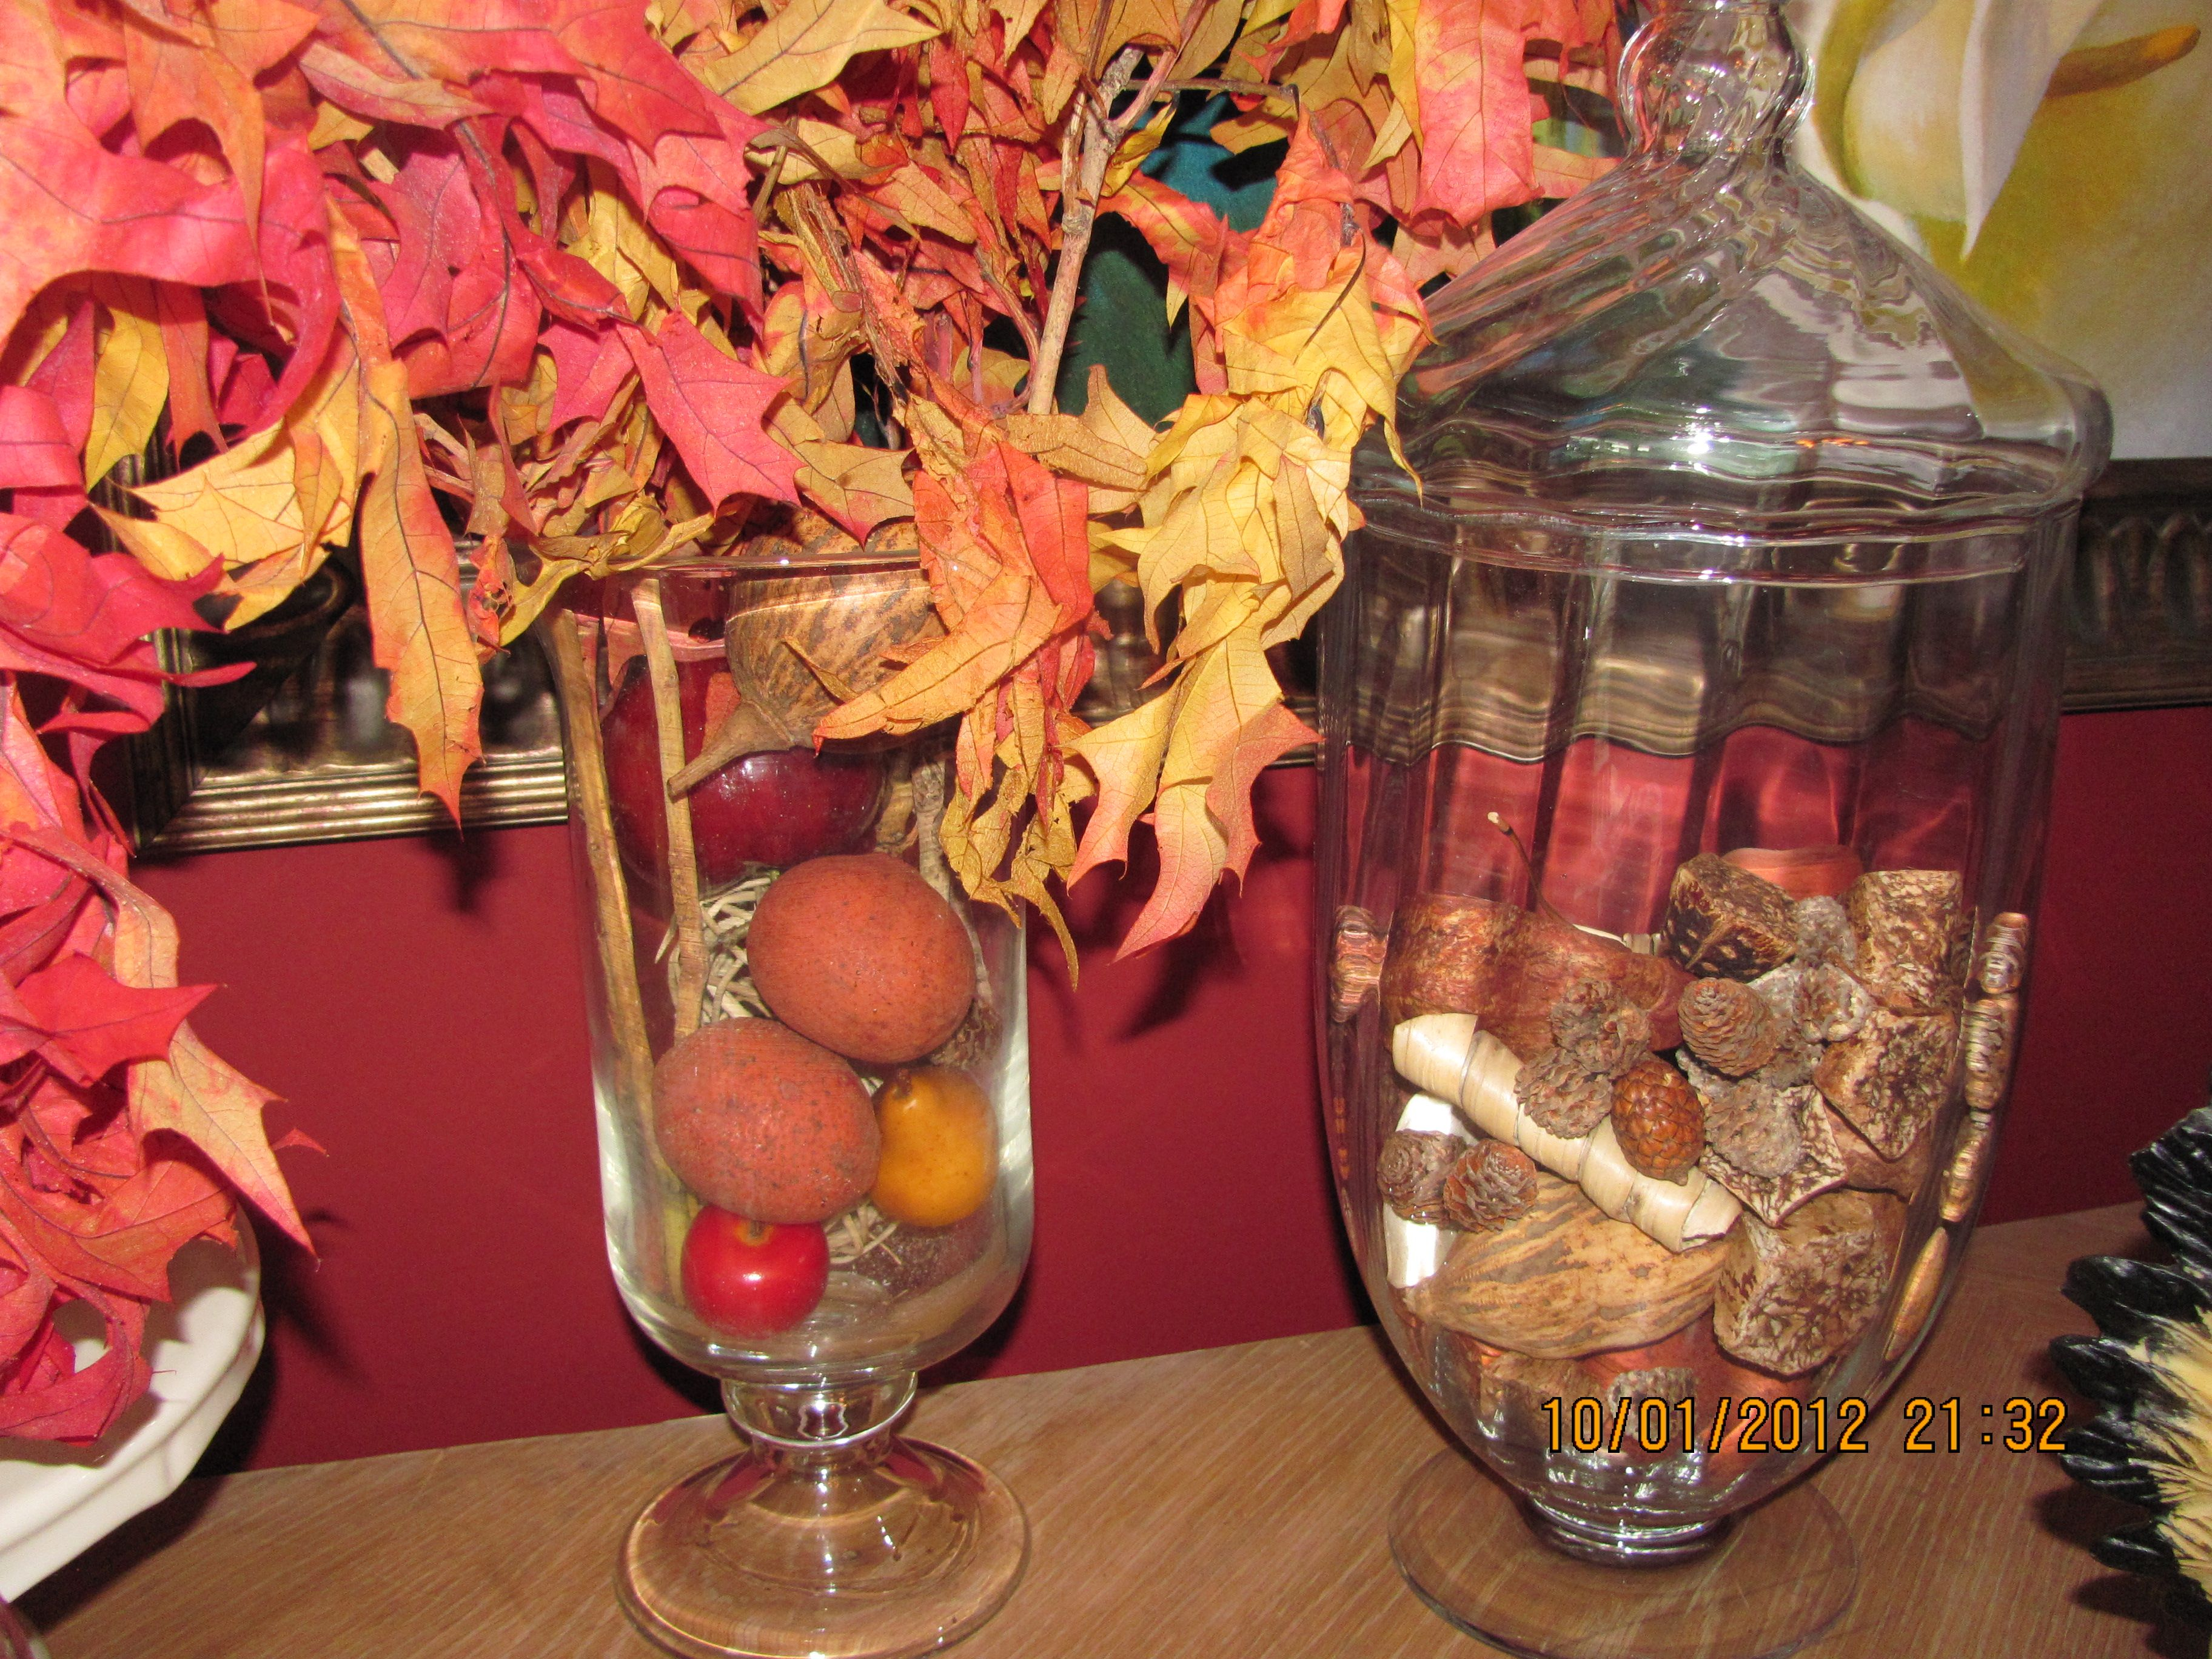 What To Put In A Bowl For Decoration Apothecary Jar Decorating Ideas  Apothecary Jars Vases & Bowls